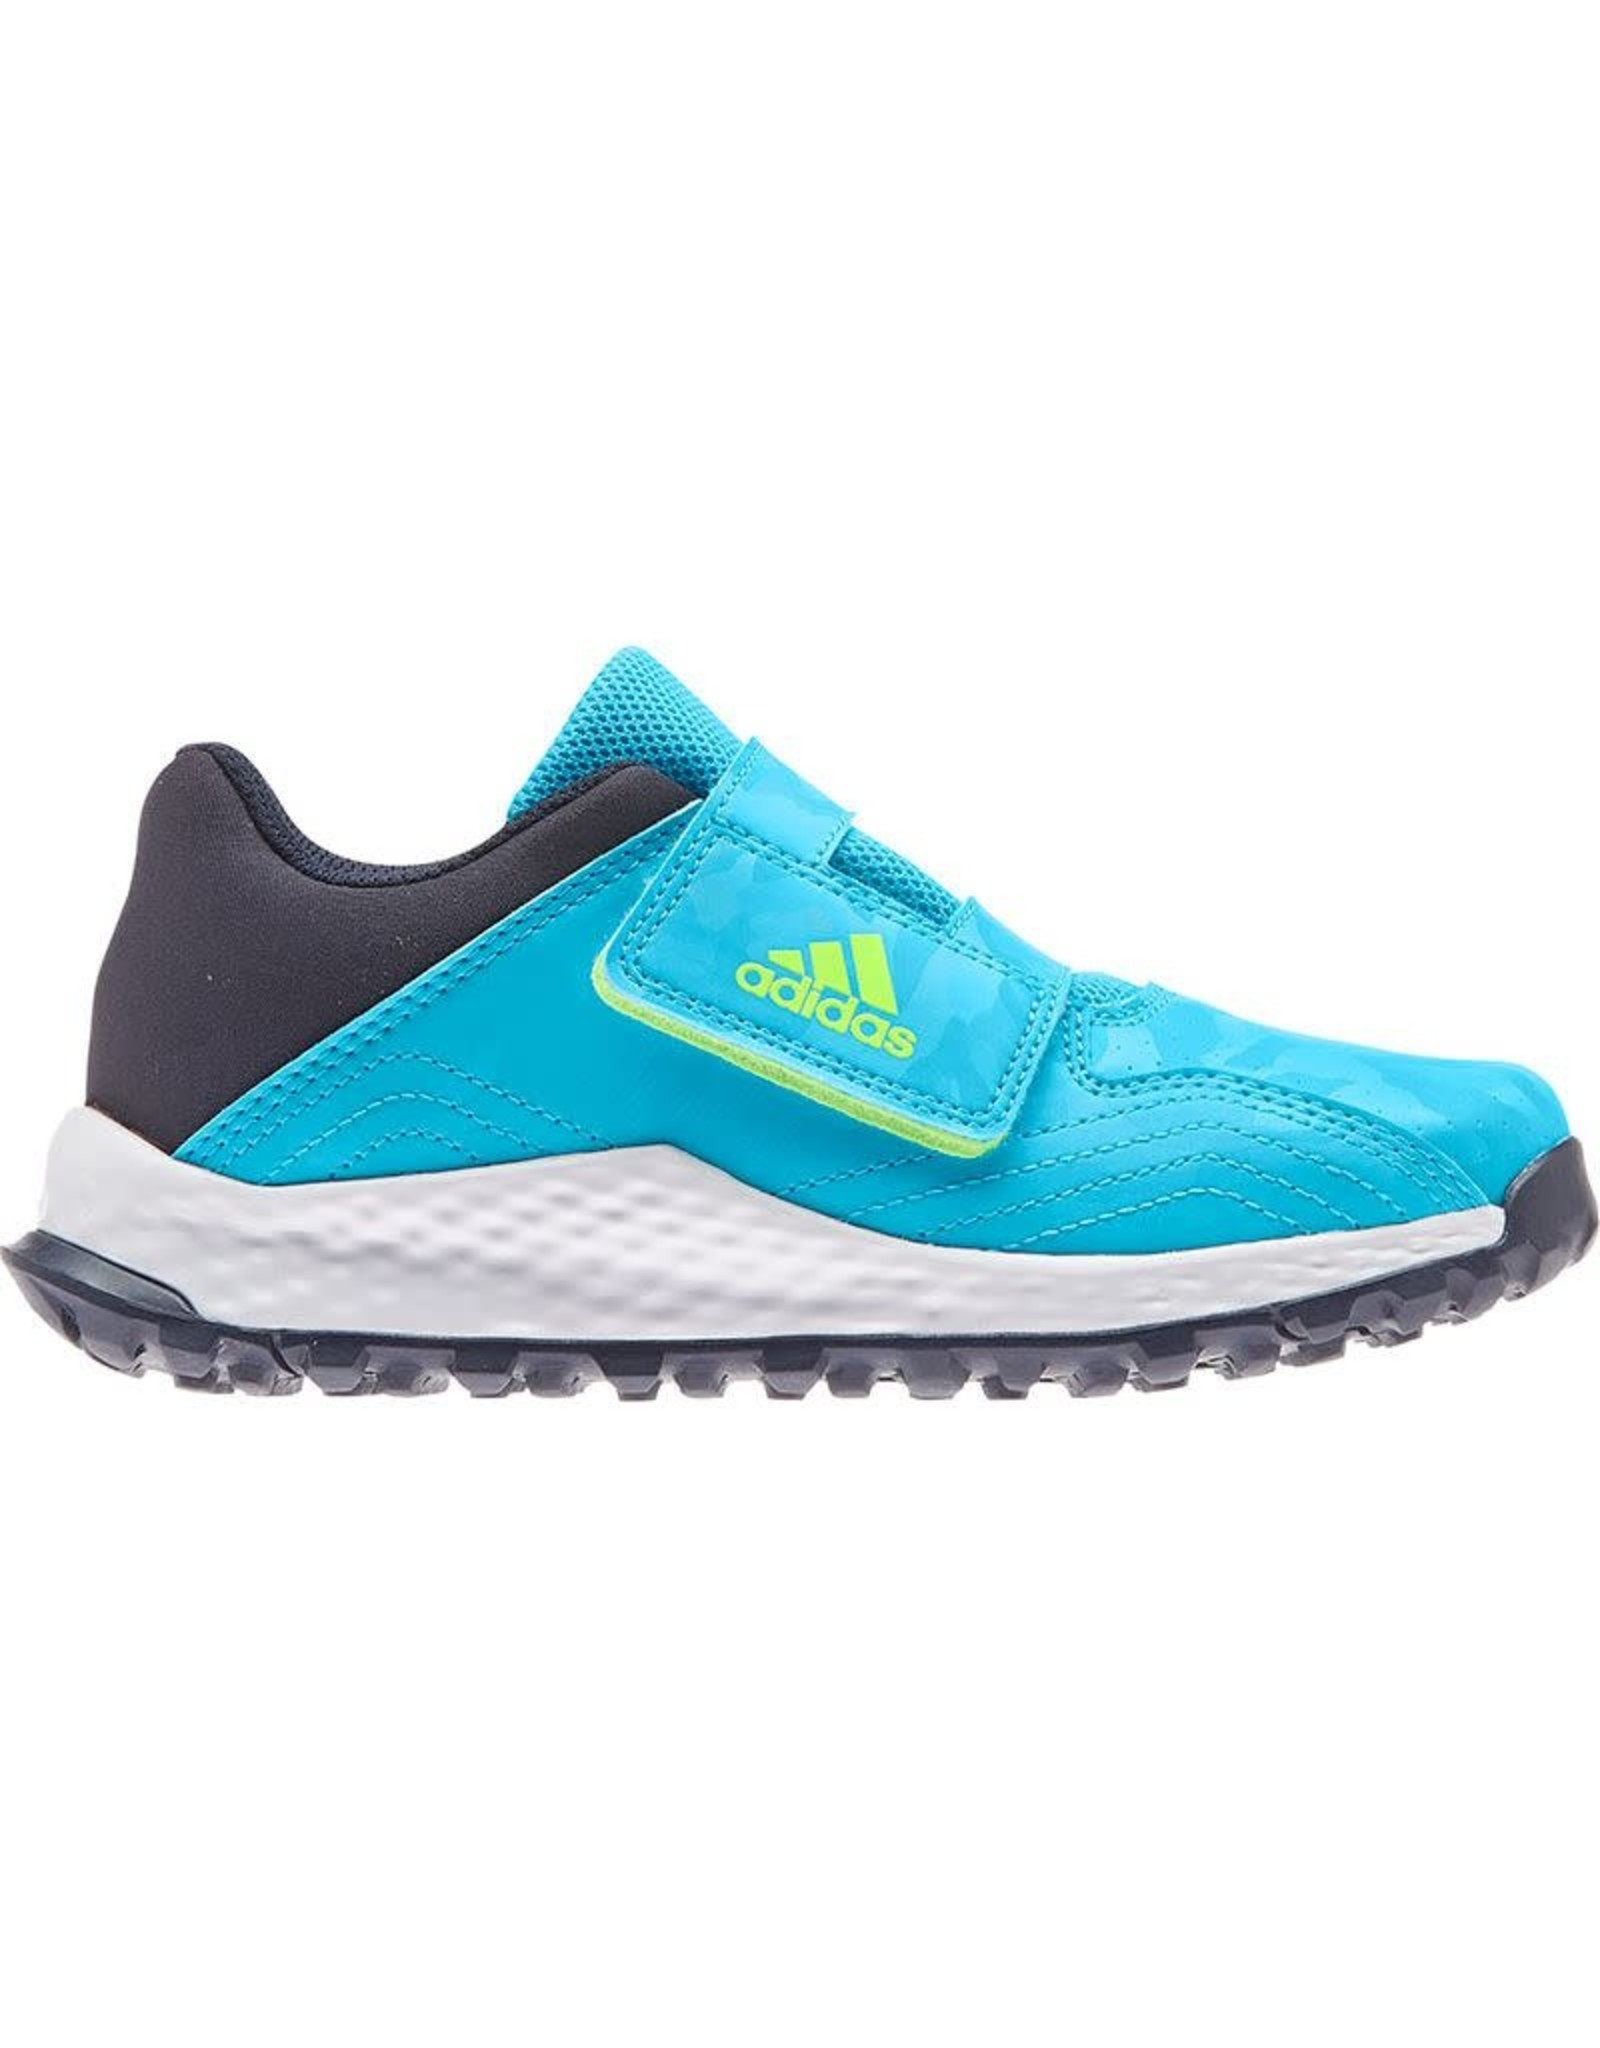 ADIDAS ADIDAS YOUNGSTAR VELCRO BLUE 20-21